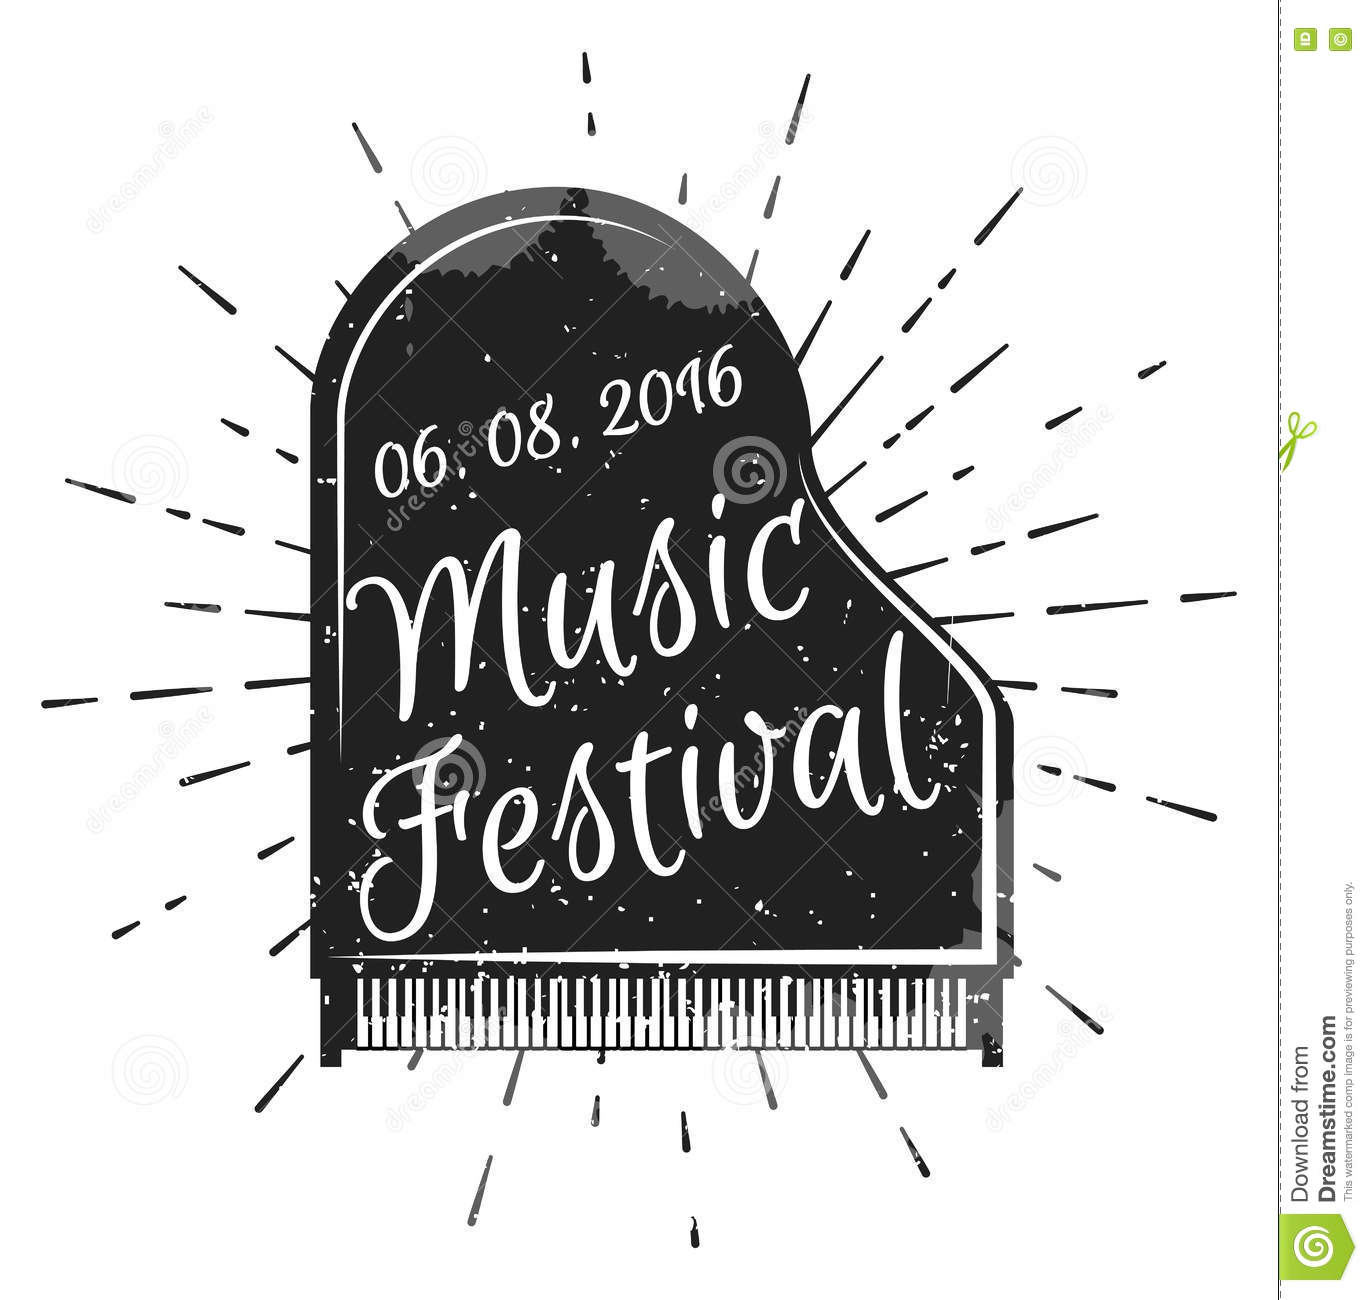 Music festival. Musical instrument piano. Vector illustration. Jazz music festival, poster background template.